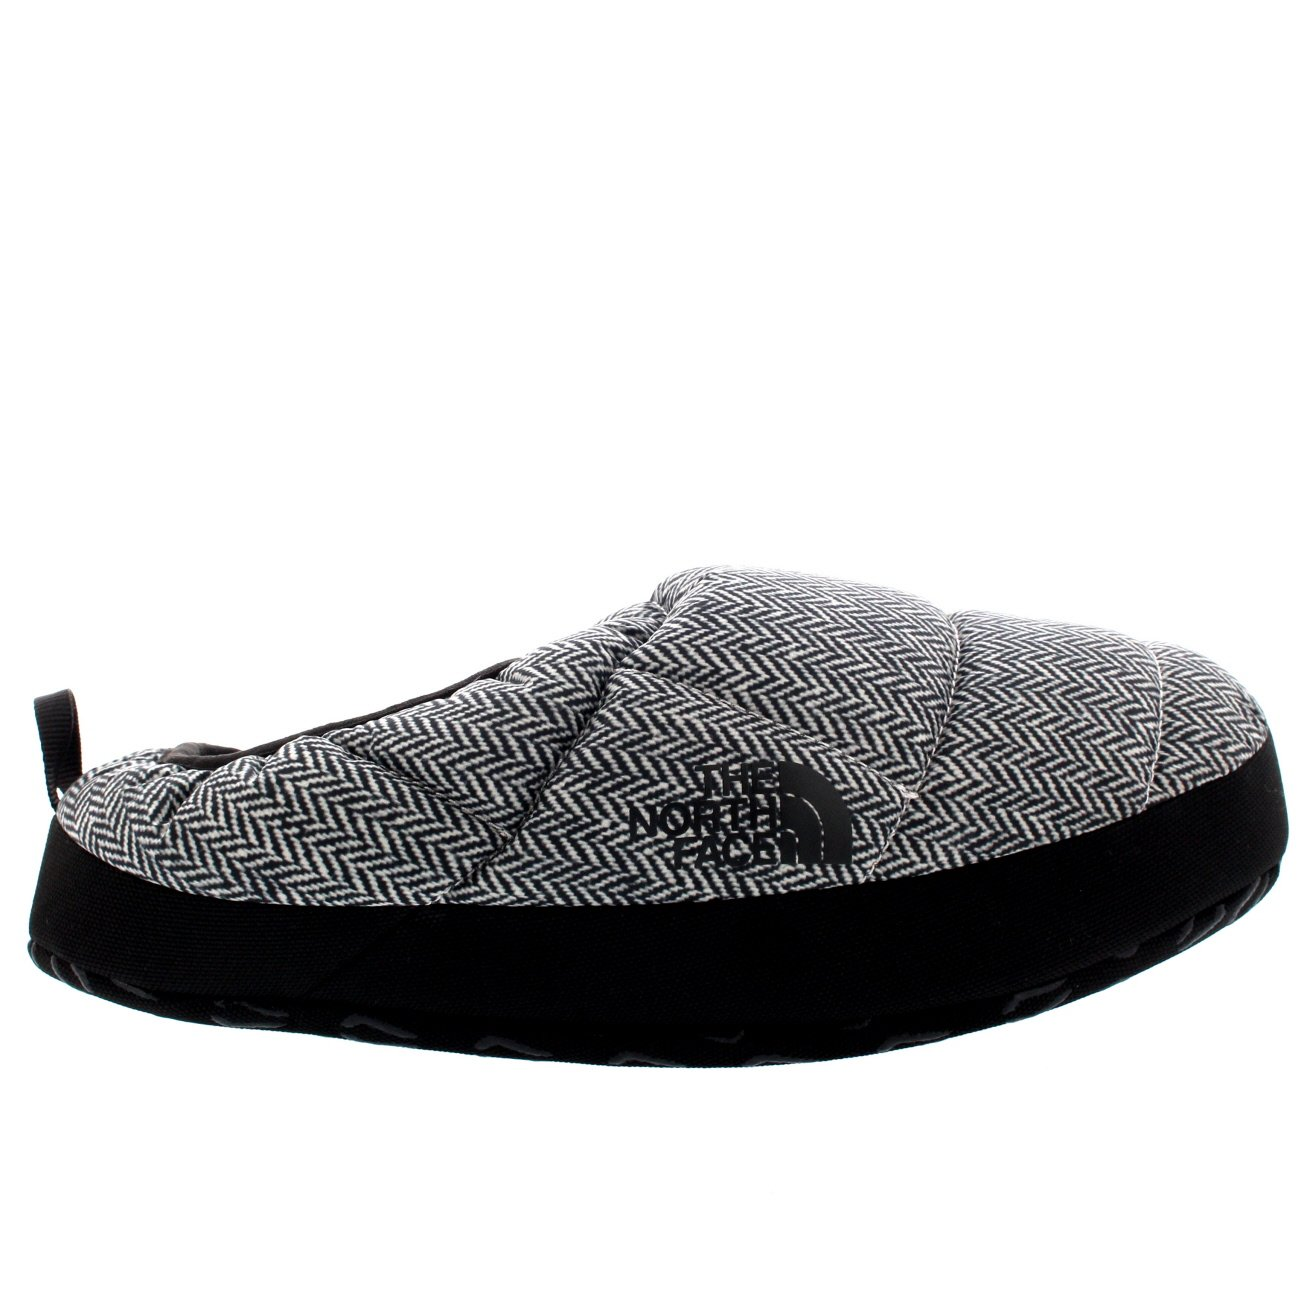 The North Face Mens NSE Tent Mule III Thermal Warm Winter Mule Slippers - Black/White - 8-9.5 by The North Face (Image #4)